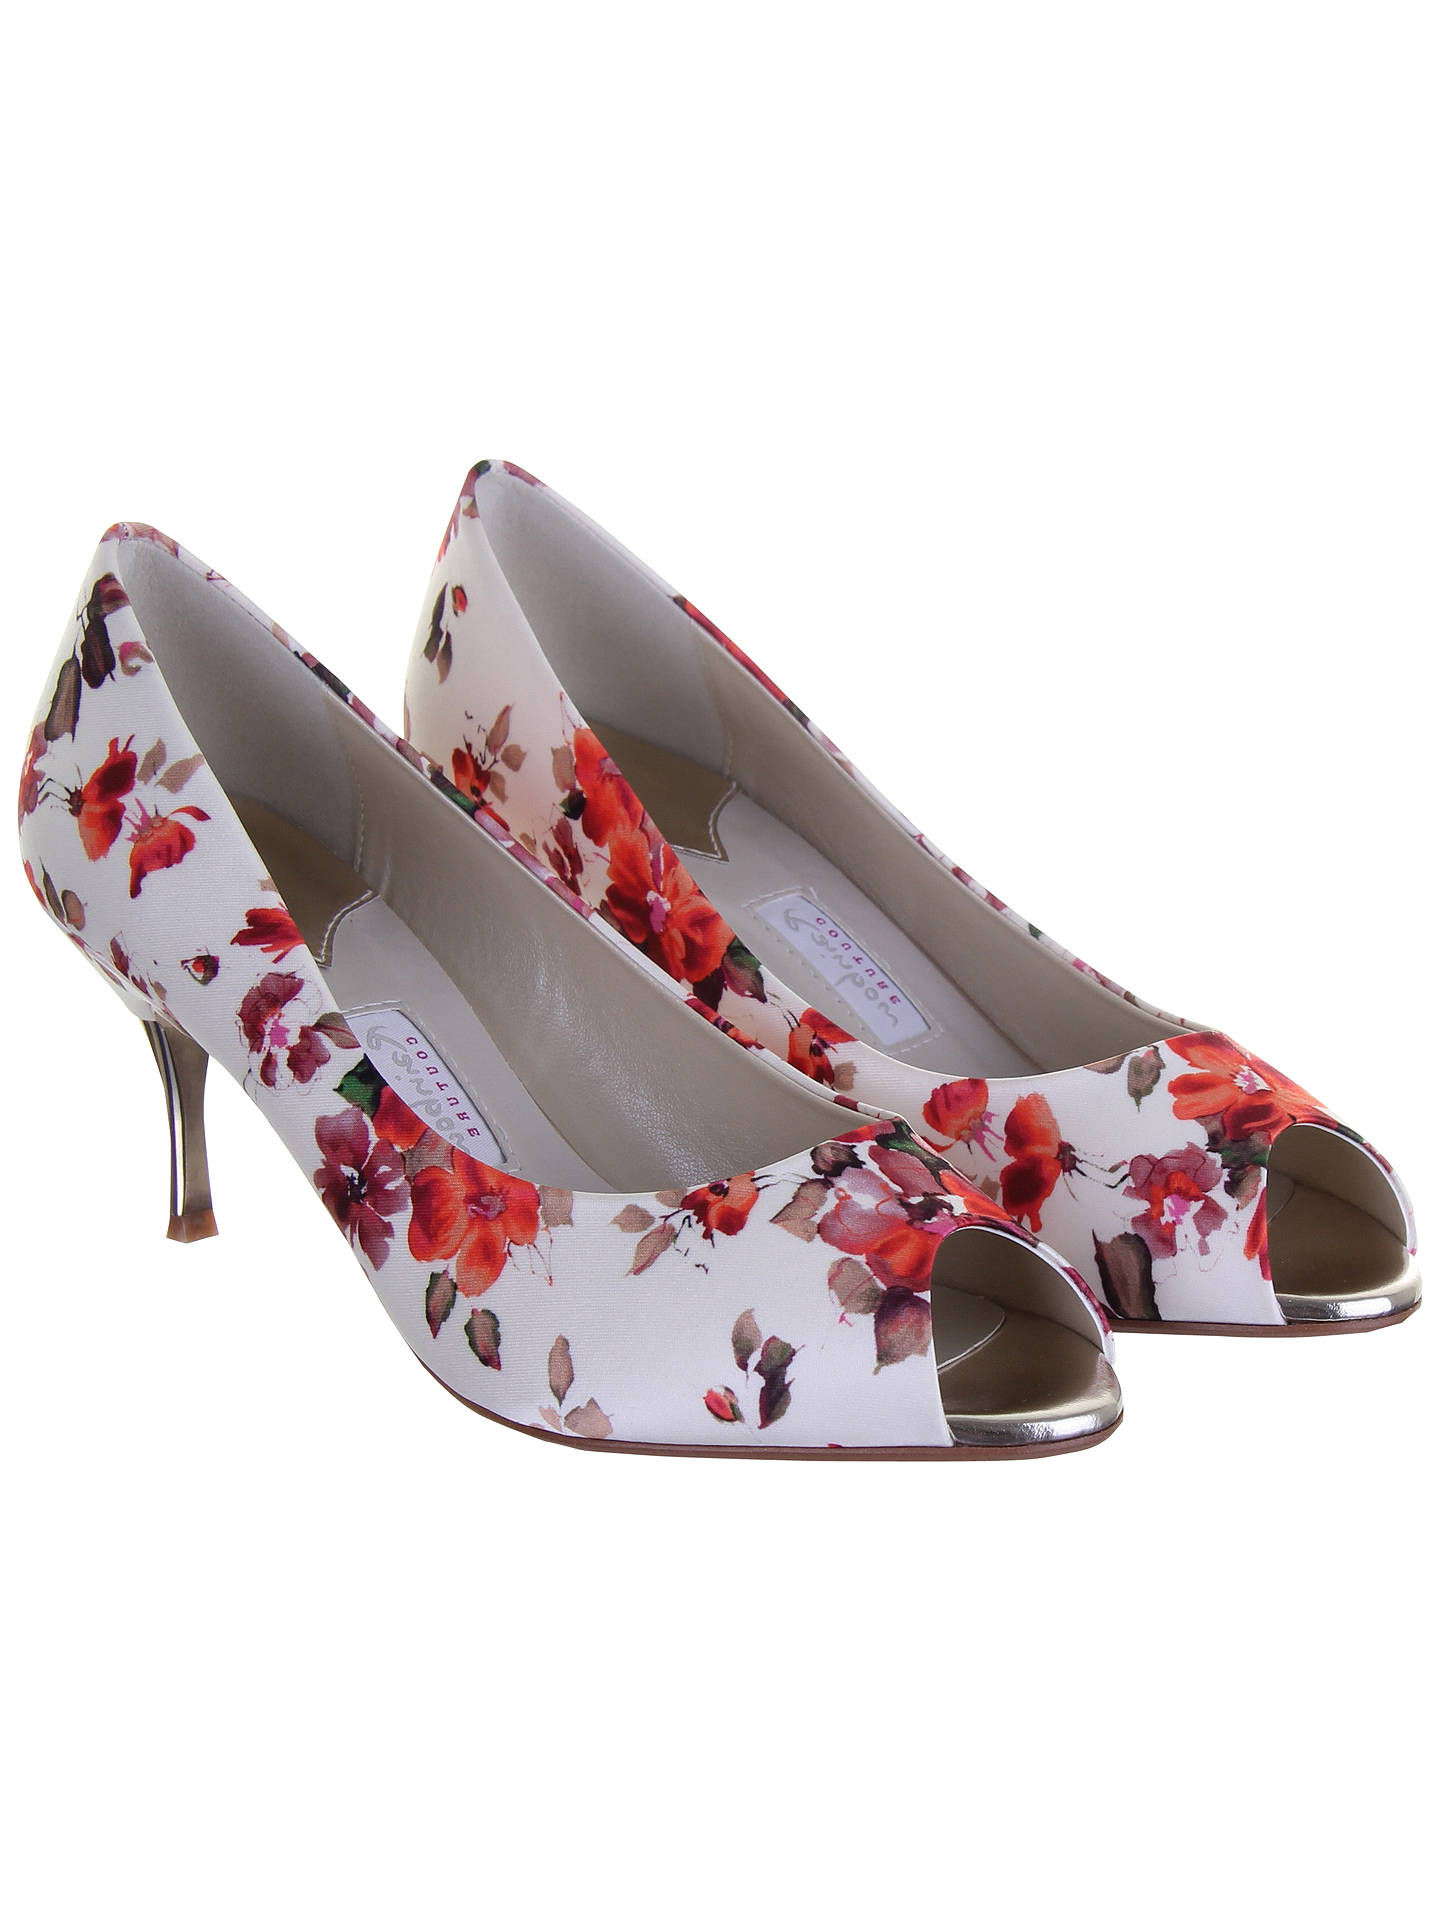 Buy Rainbow Couture Cleo Floral Print Satin Peep Toe Shoes, Multi, 5.5 Online at johnlewis.com